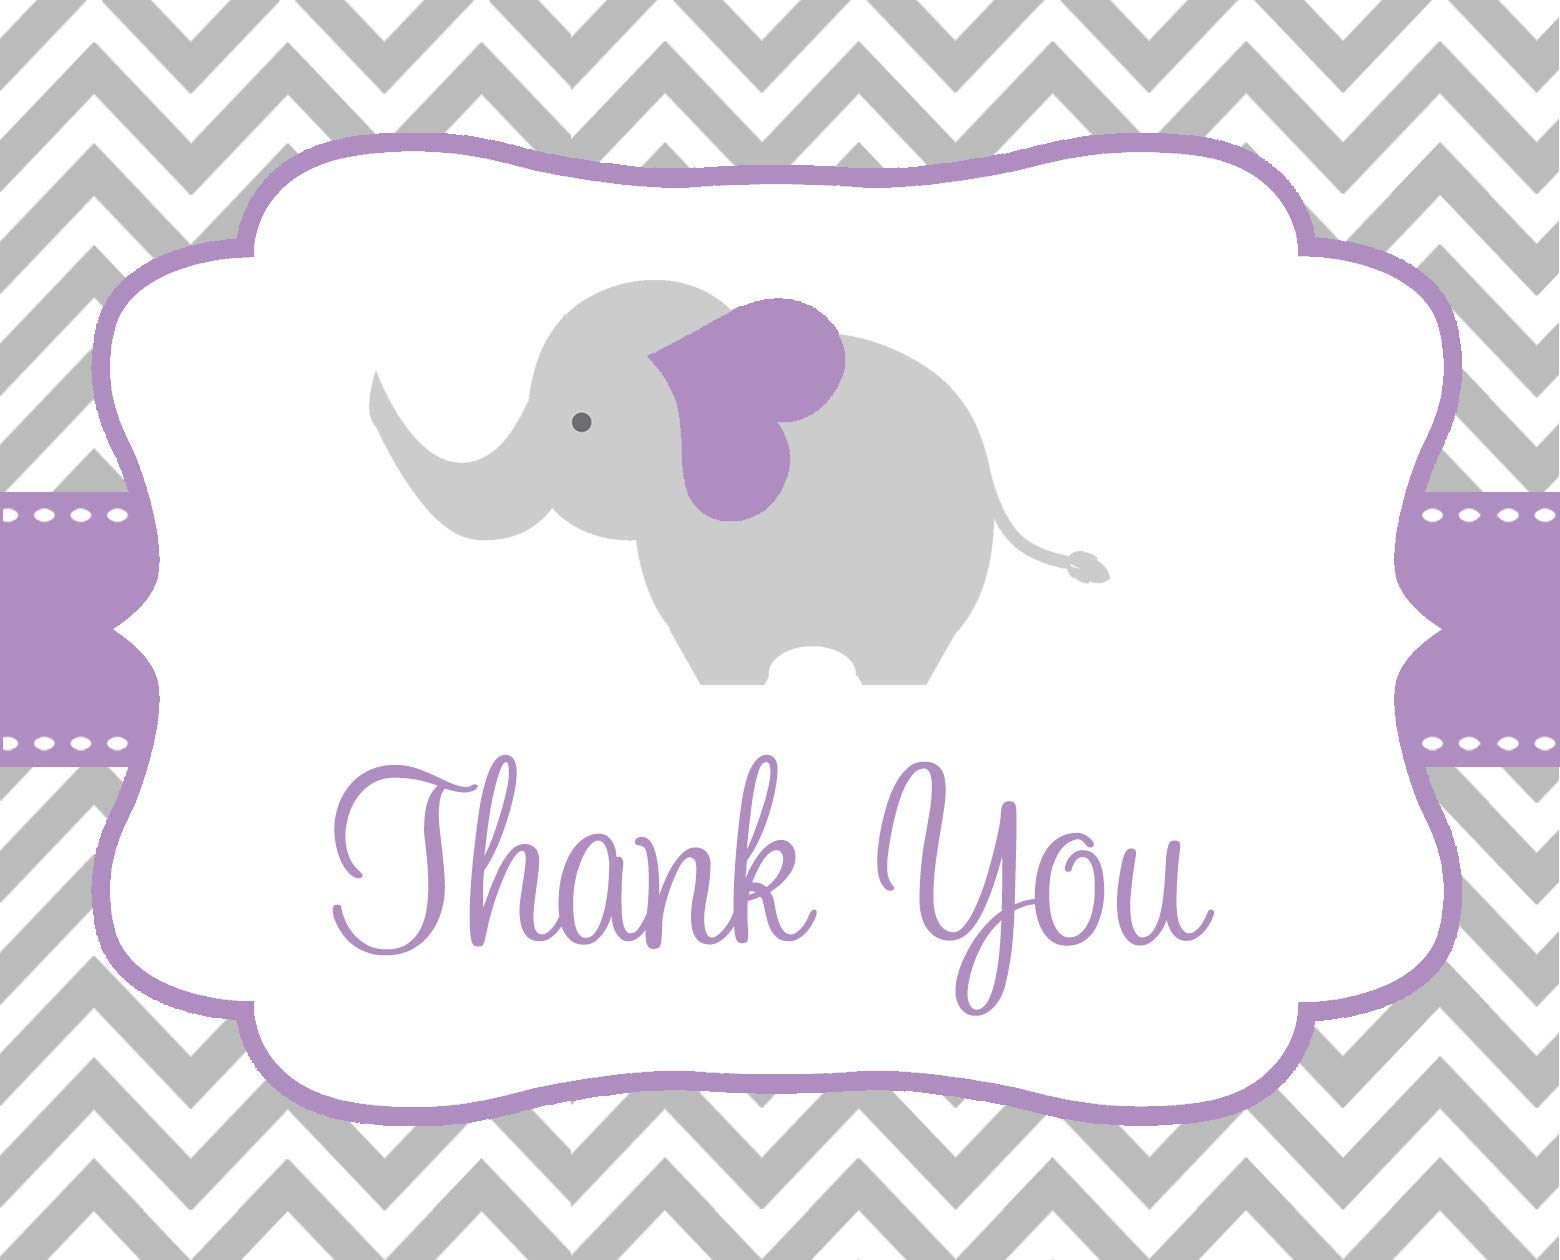 Elephant Thank You Cards, Chevron, Stripes, Baby Shower, Sprinkle, Little Peanut, It's a Girl, Purple, Gray, Grey, Grey, 50 Printed Folding Notes with White Envelopes, Chevron Elephant (Purple)